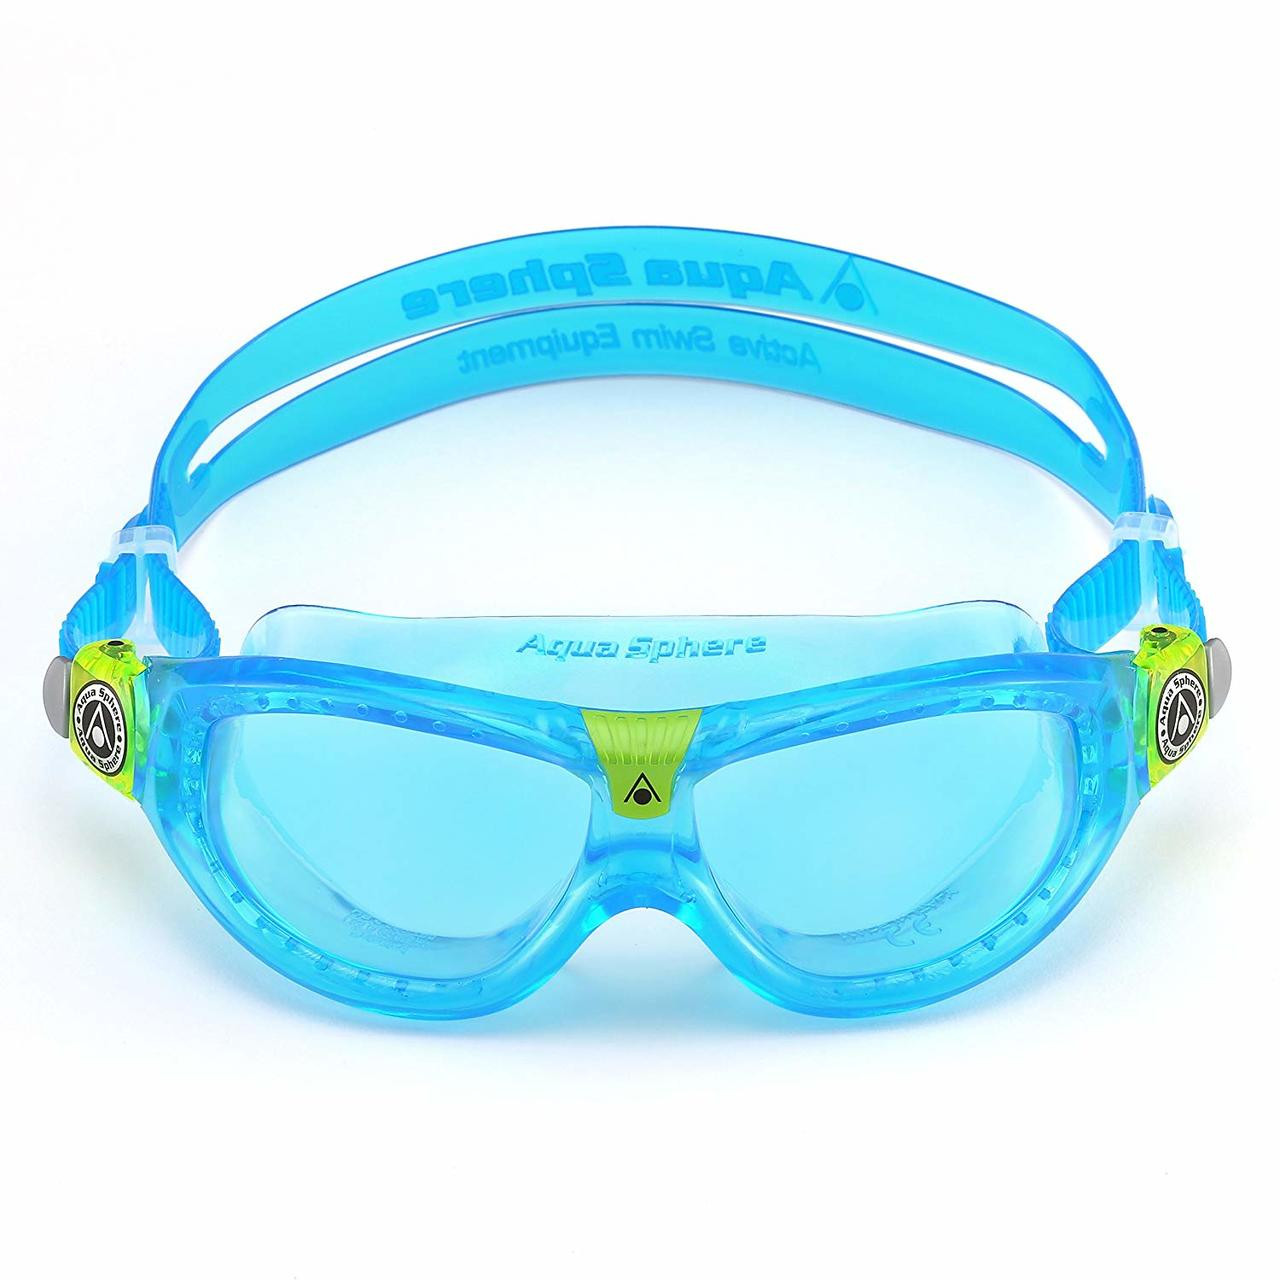 Aqua Sphere Seal Kid 2 Goggle with Blue Lens - 2019 price